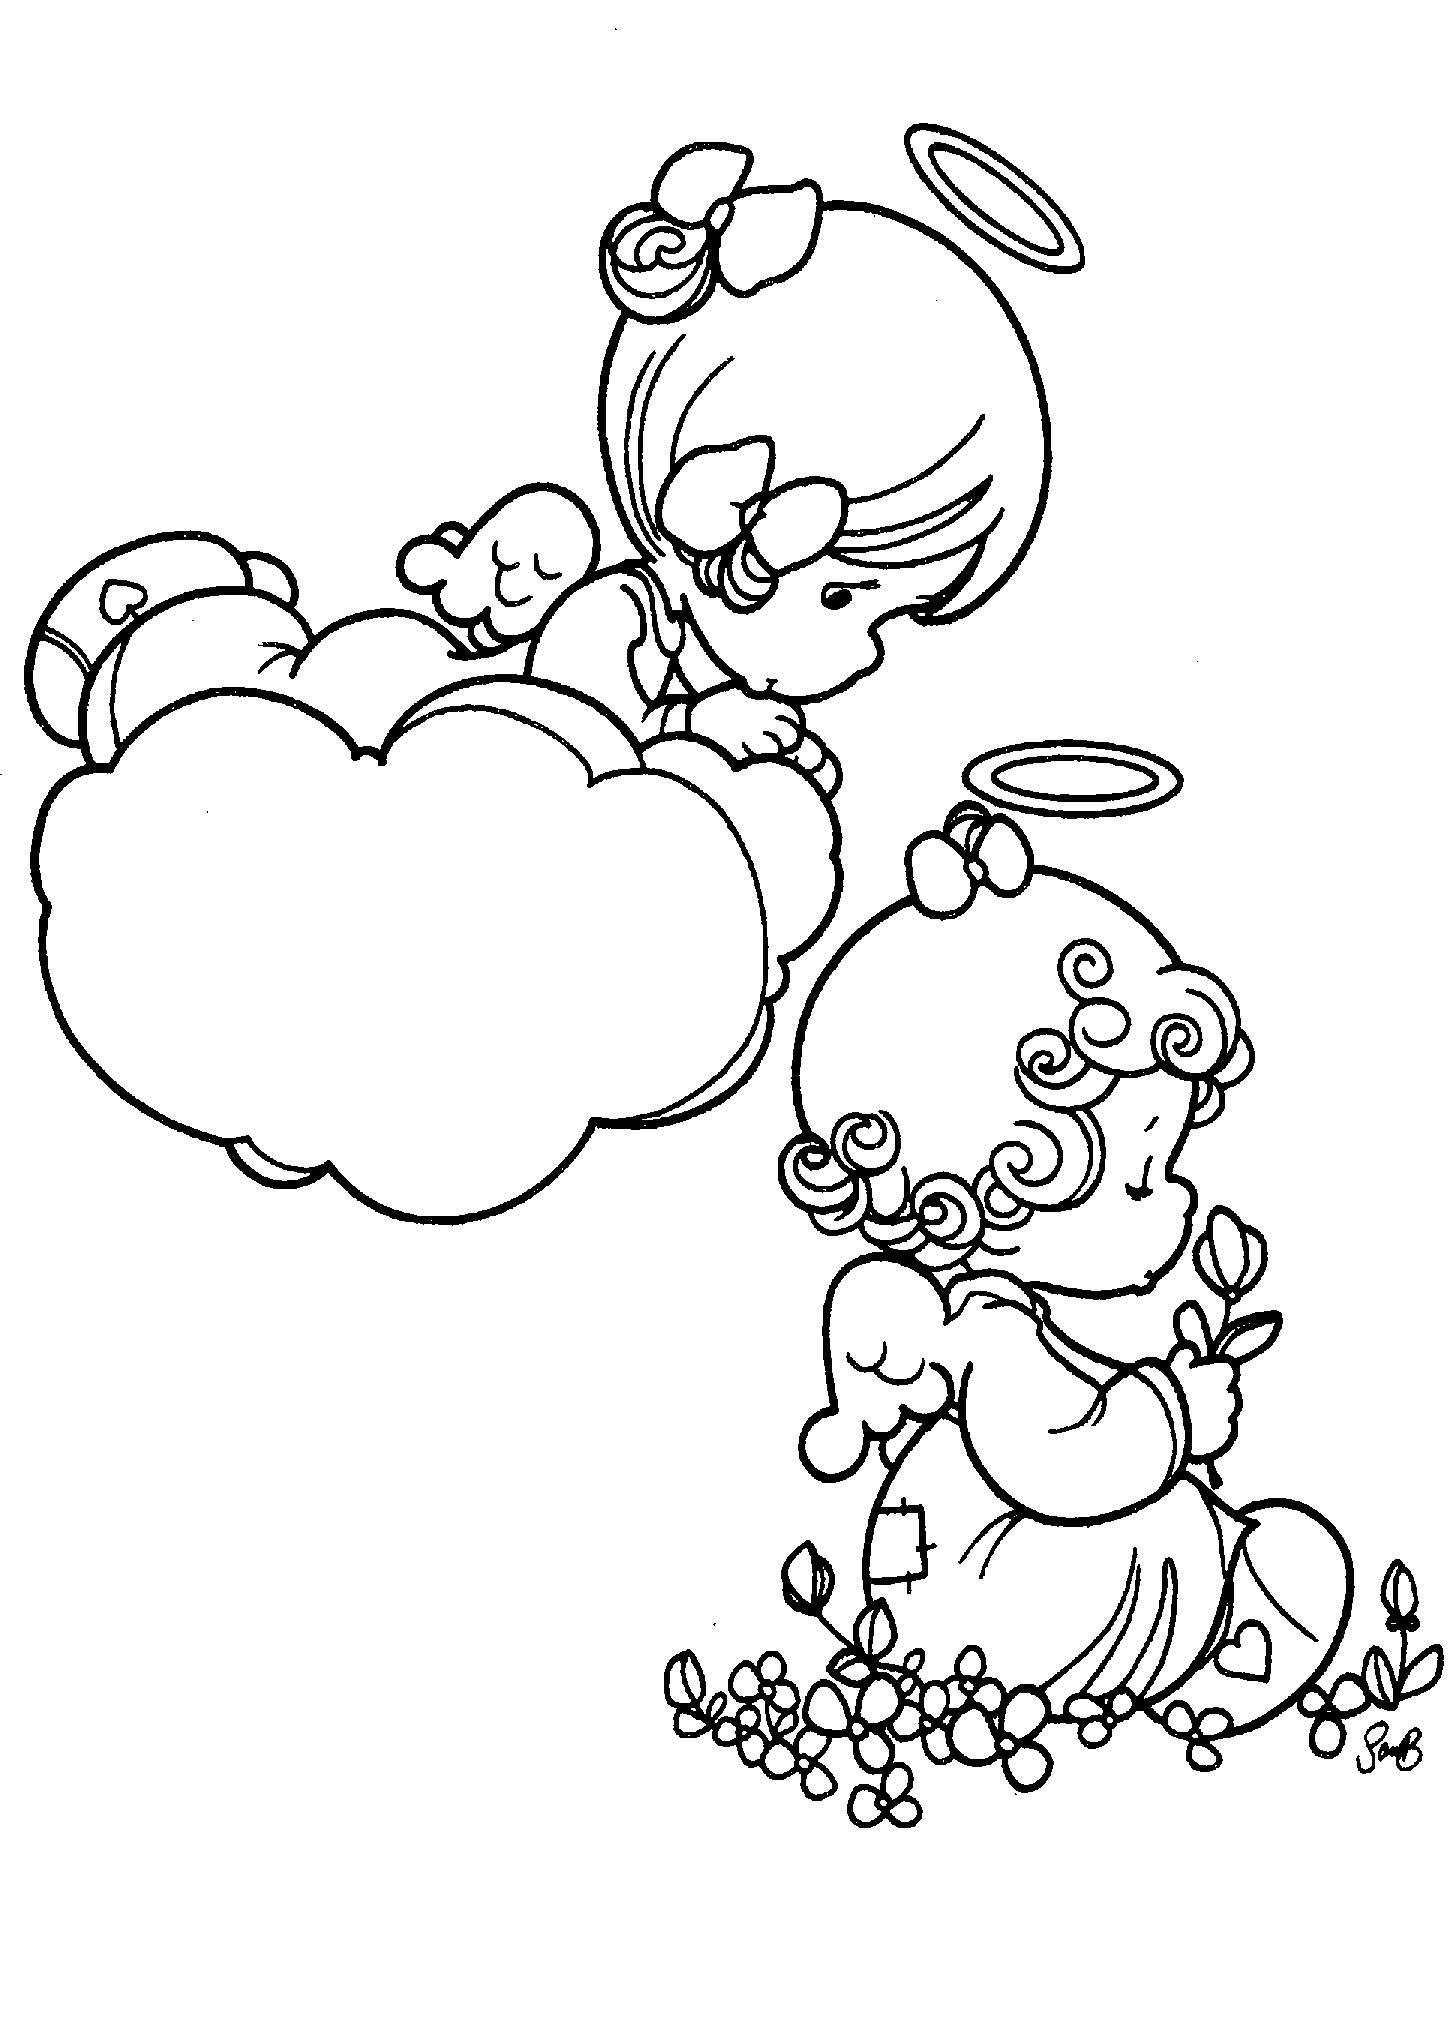 Precious Moments Love Coloring Pages | Coloring - Precious Moments ...